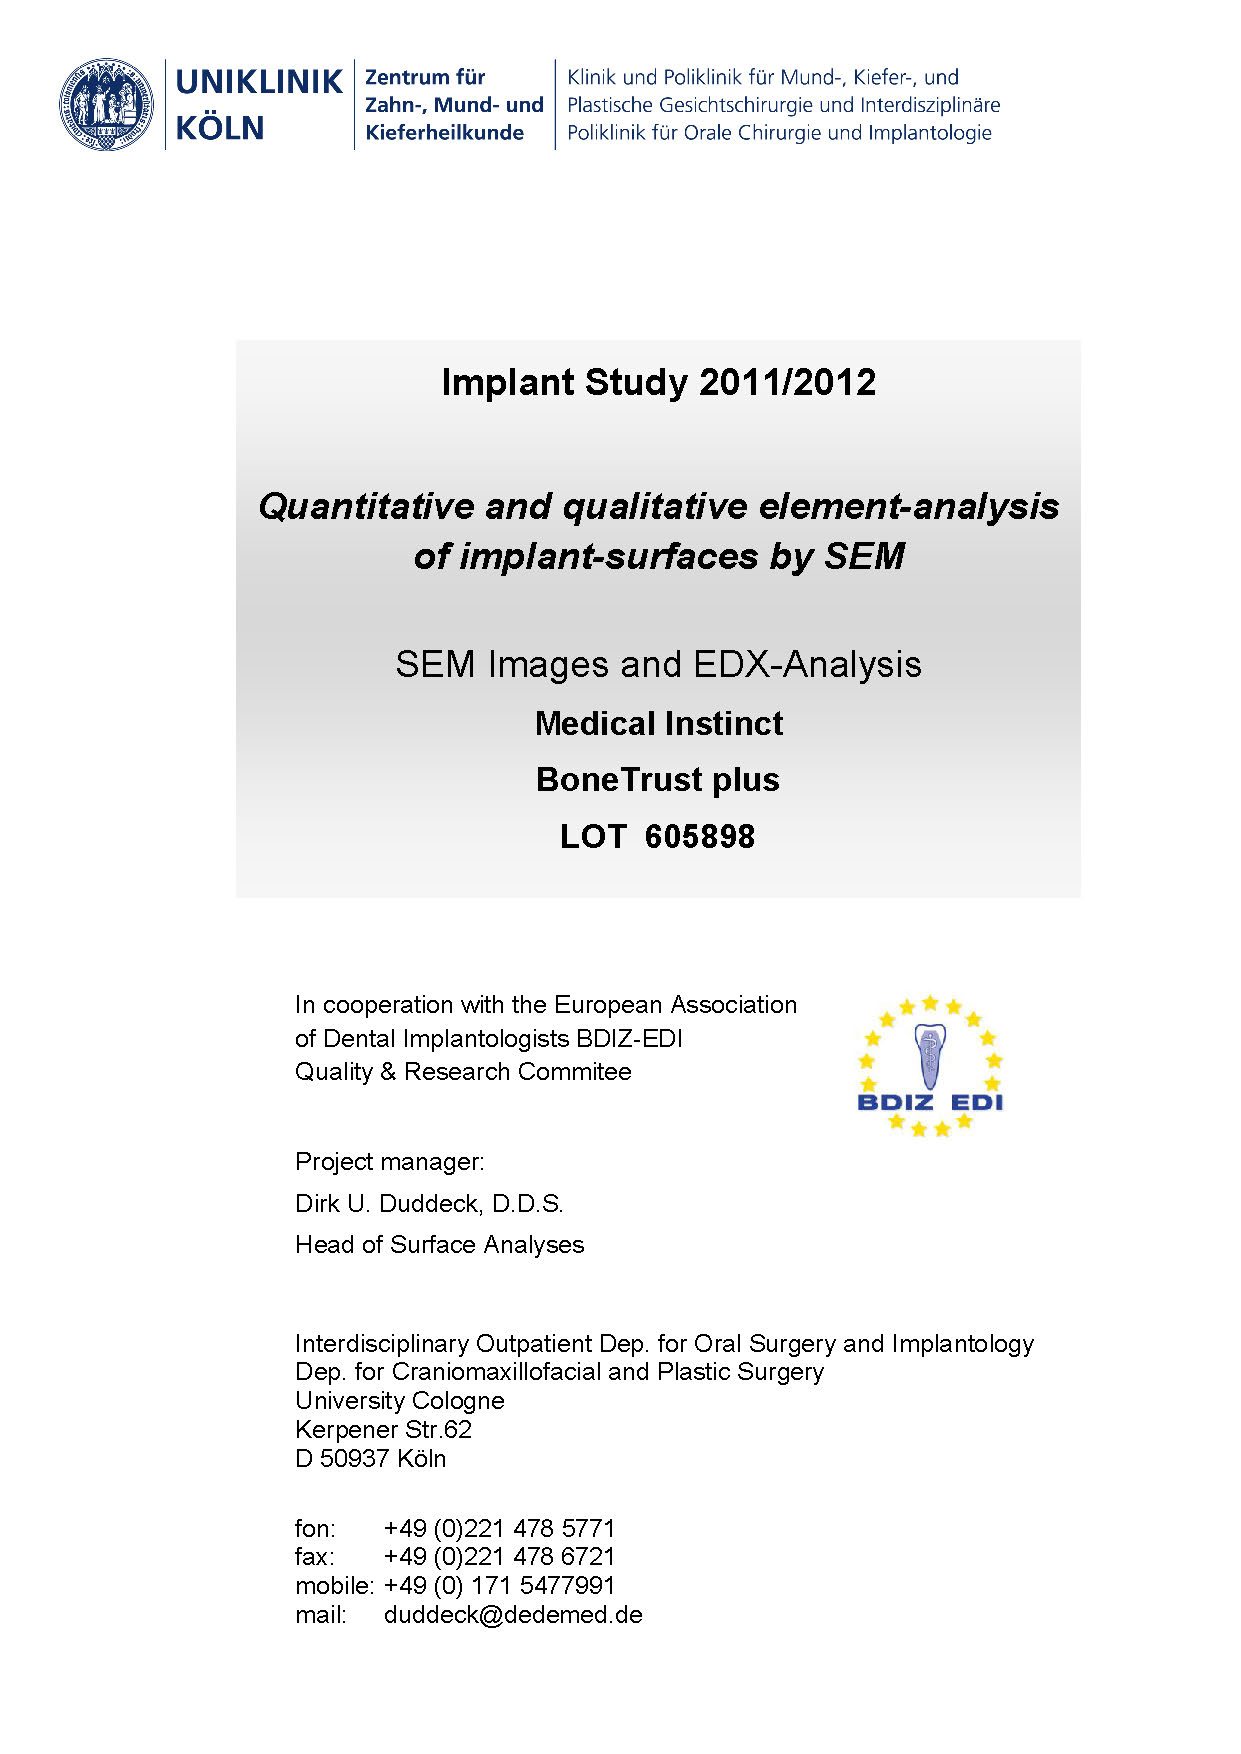 Study Report - Quantitative and qualitative element-analysis of implant-surfaces by SEM